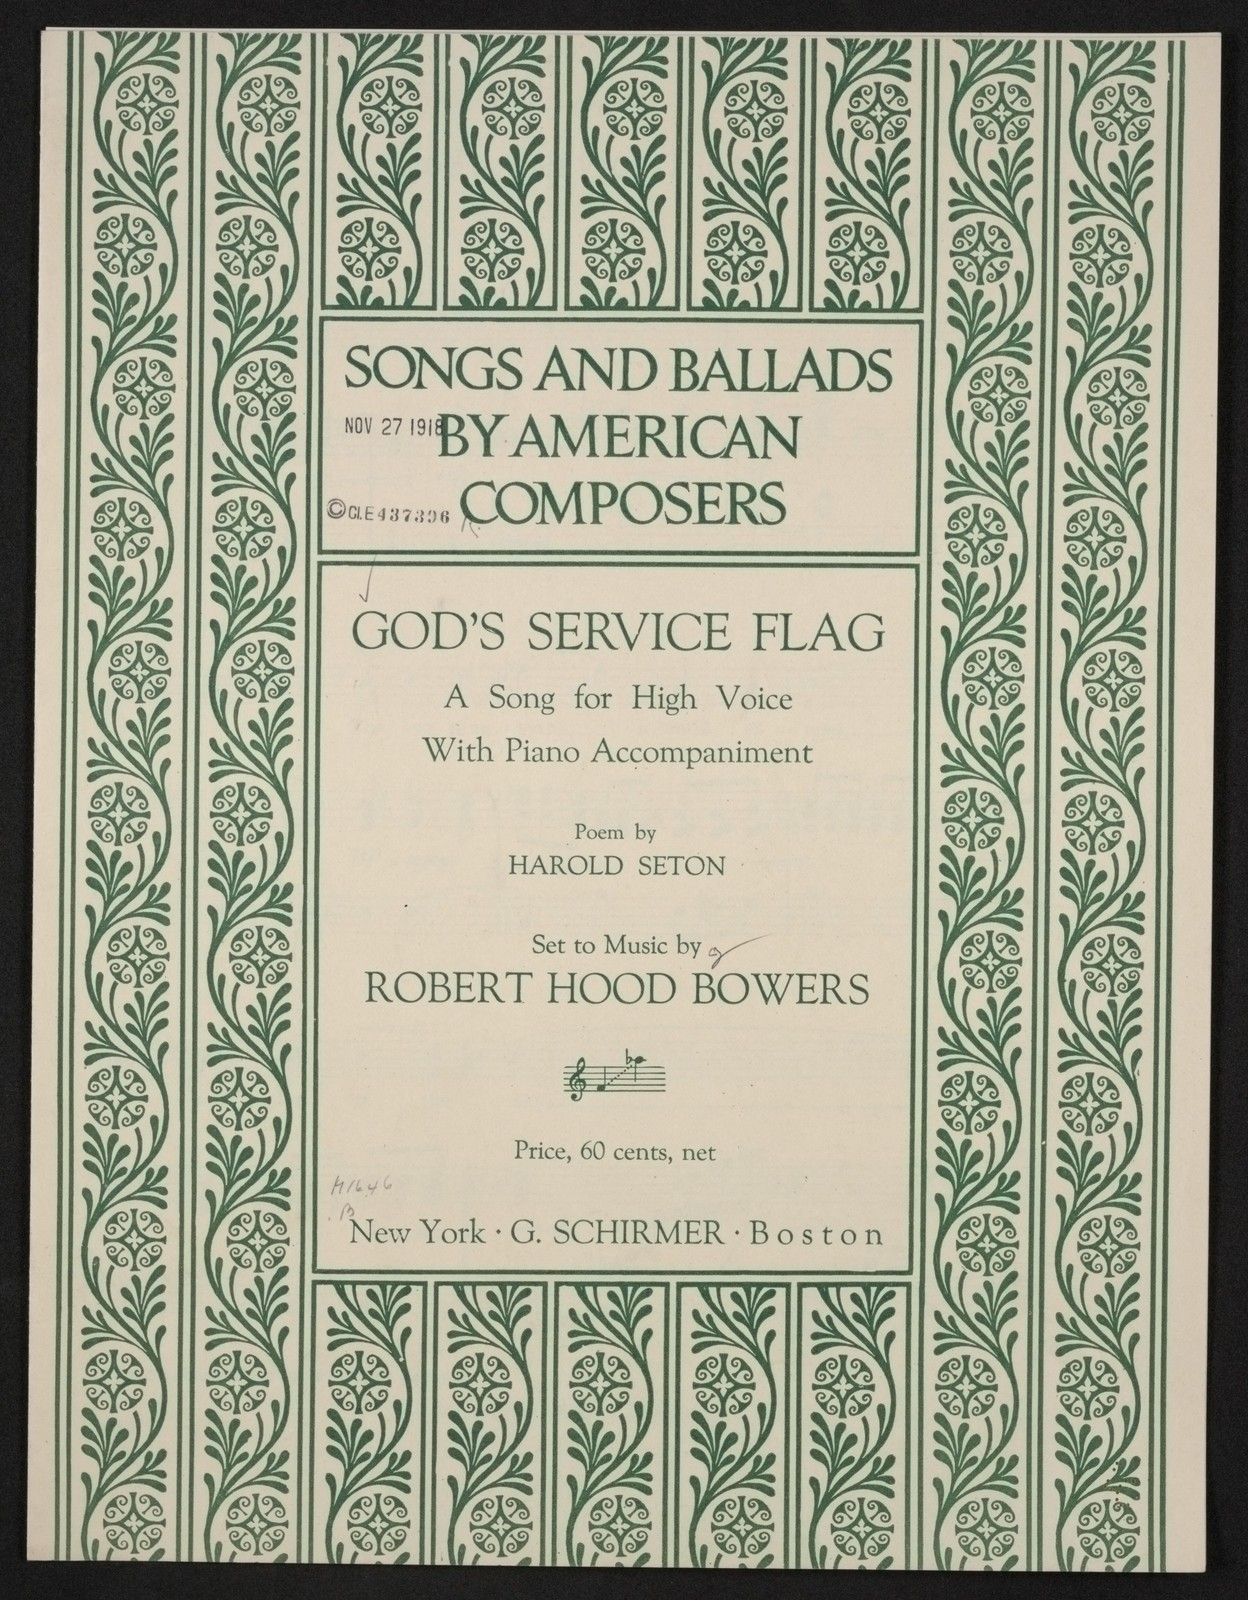 God's service flag a song for high voice with piano accompaniment